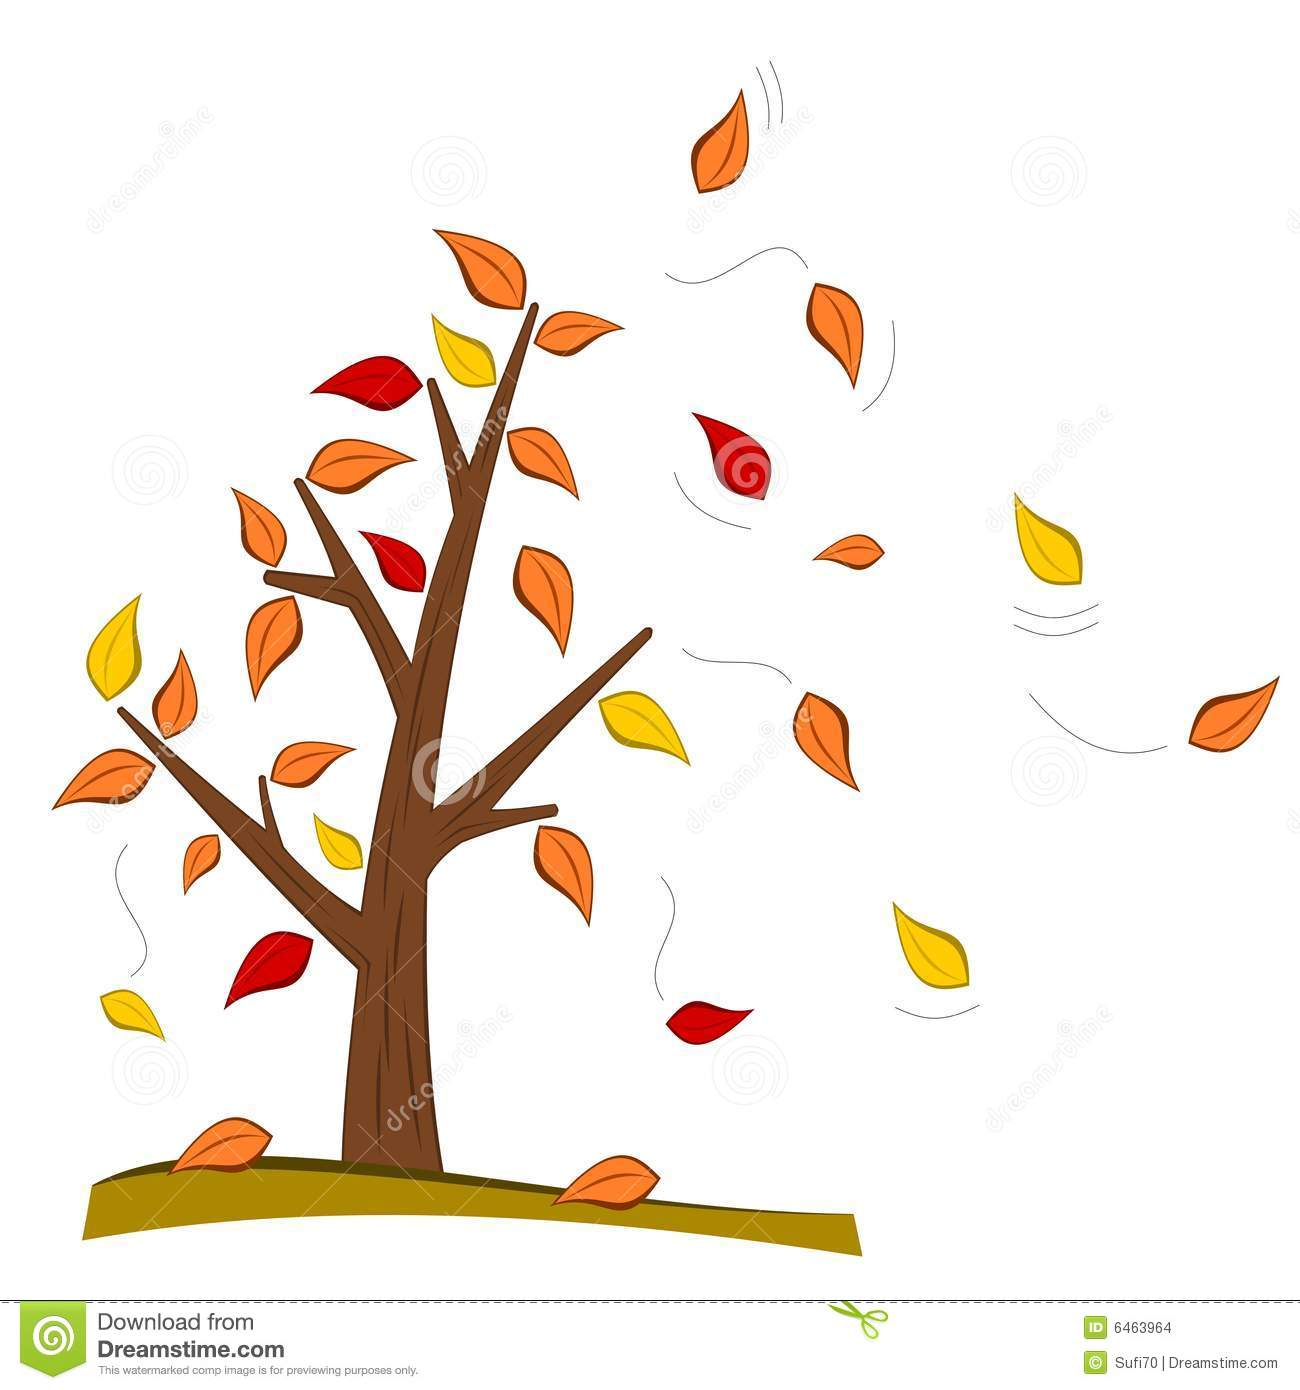 Clip Art Tree With Falling Leaves Clipart - Clipart Kid